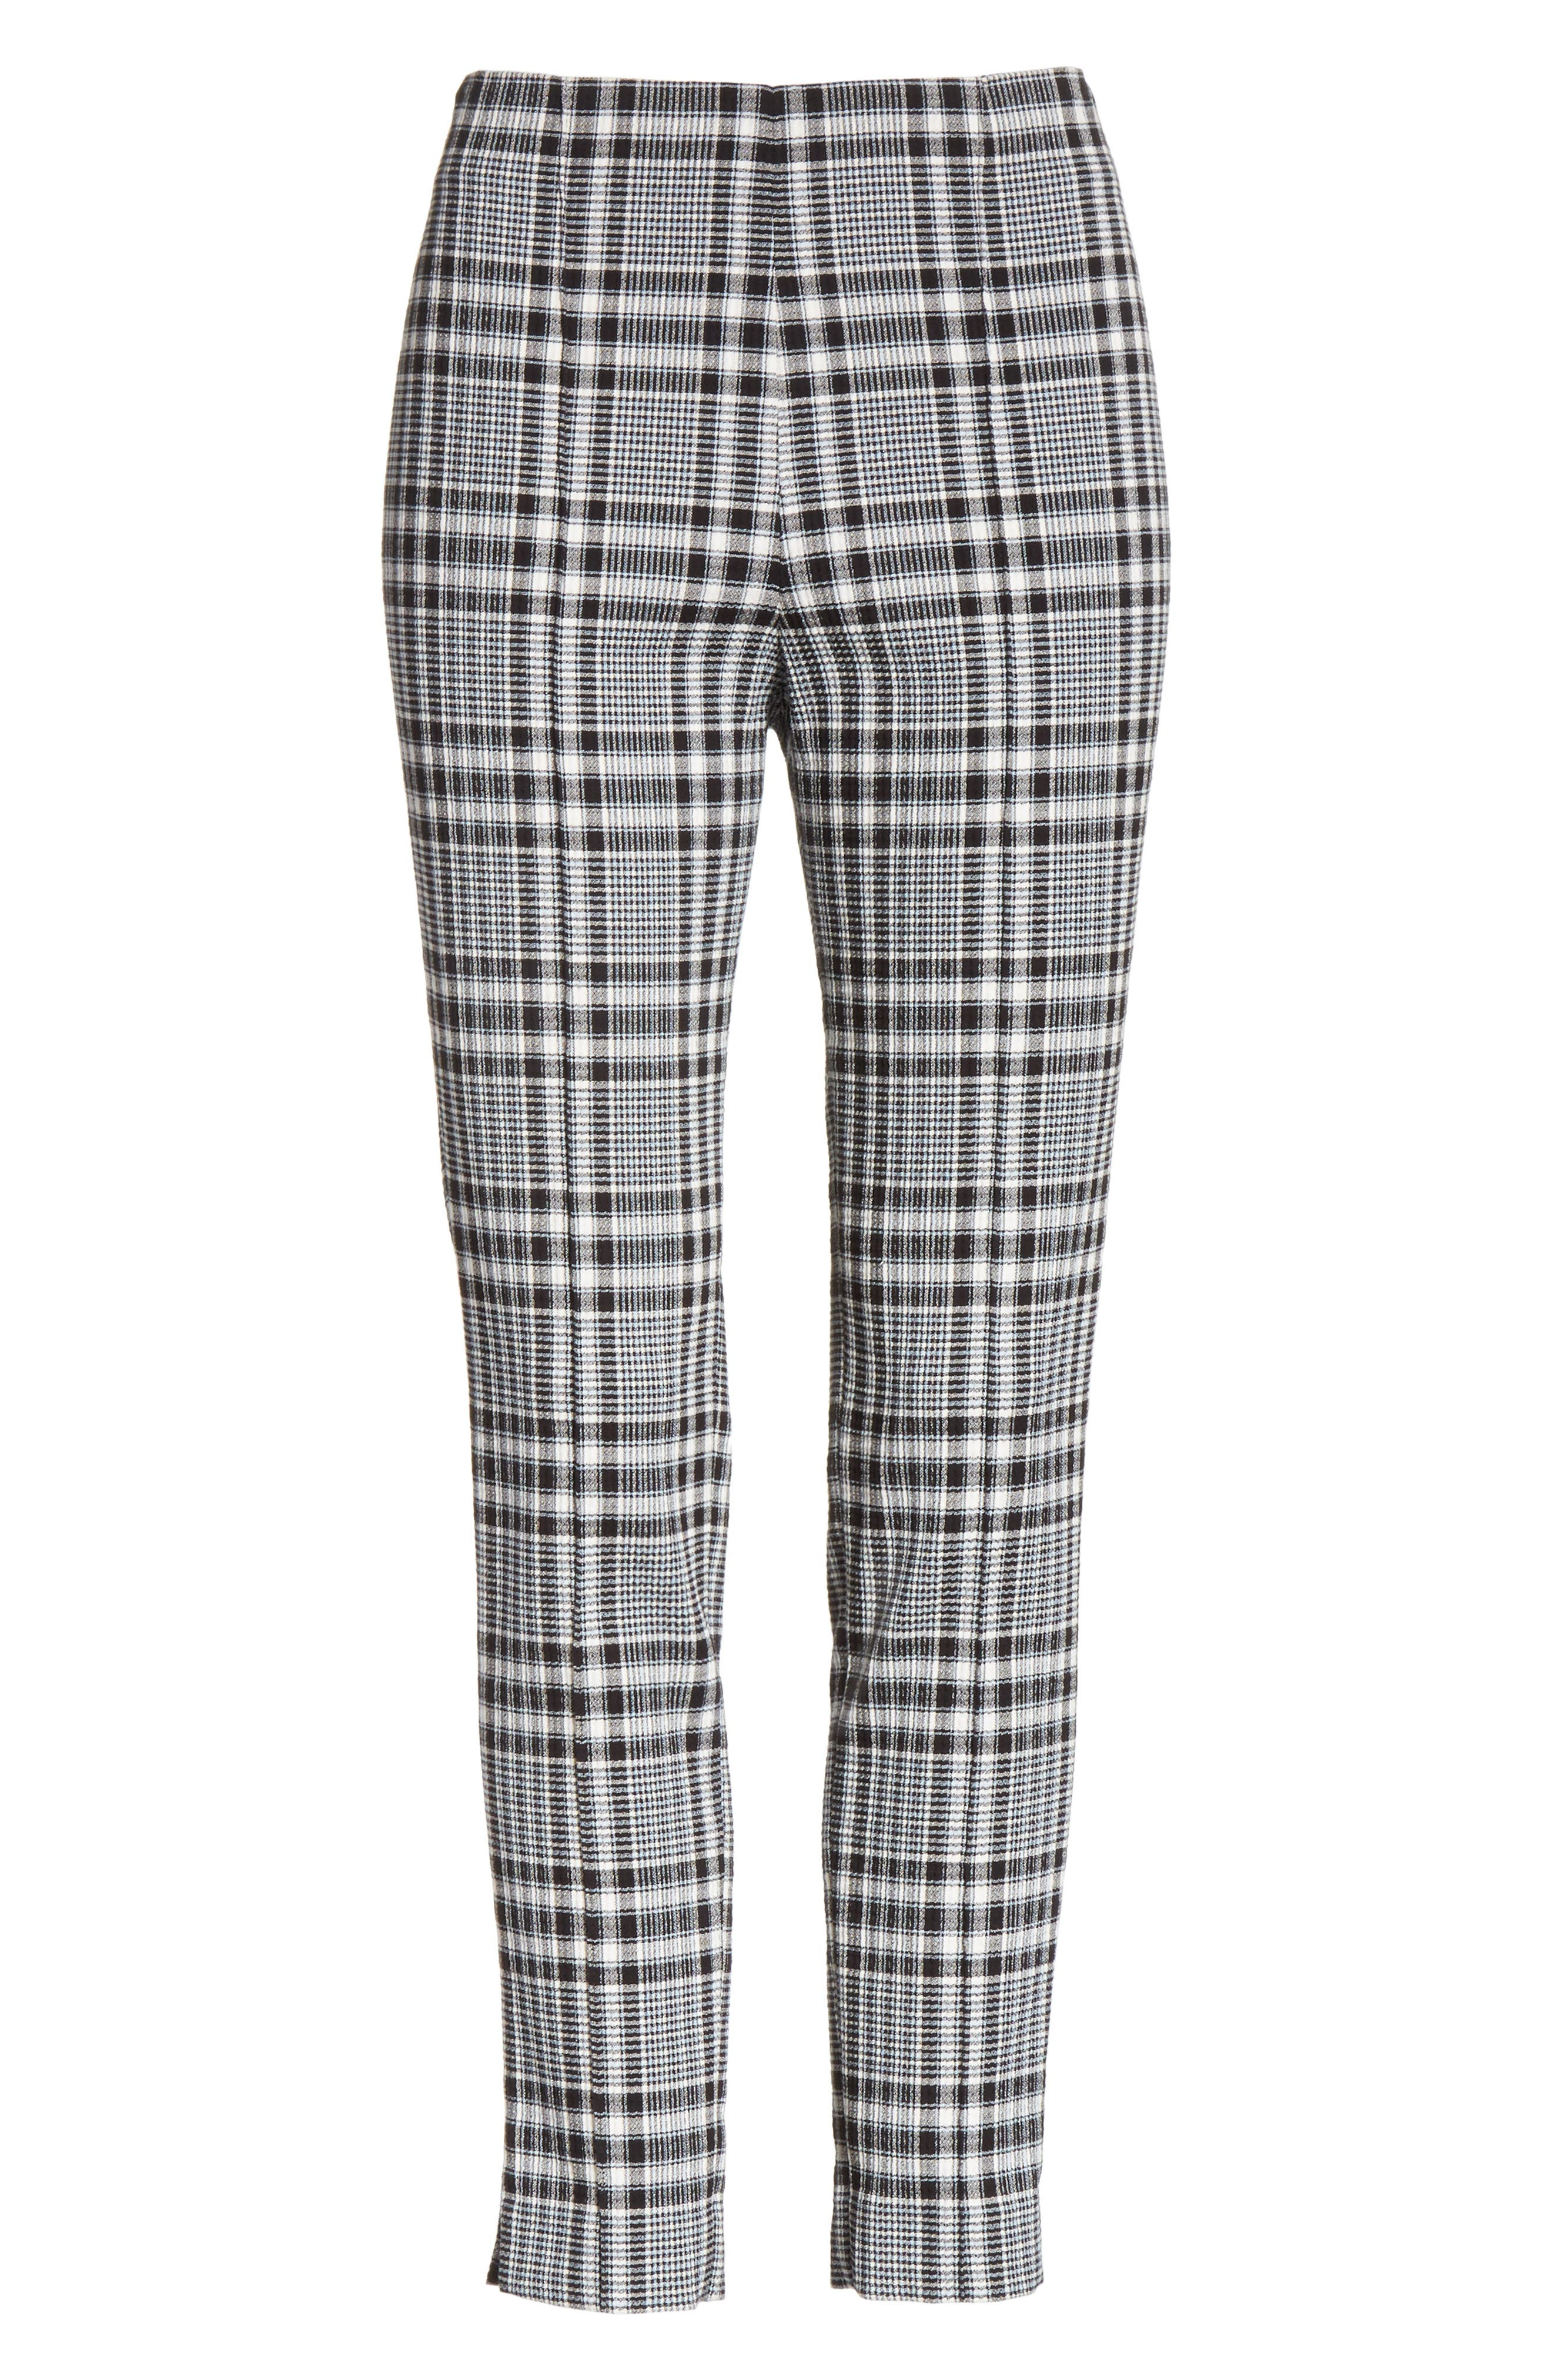 Honolulu Plaid Crop Pants,                             Alternate thumbnail 6, color,                             Black/ Blue